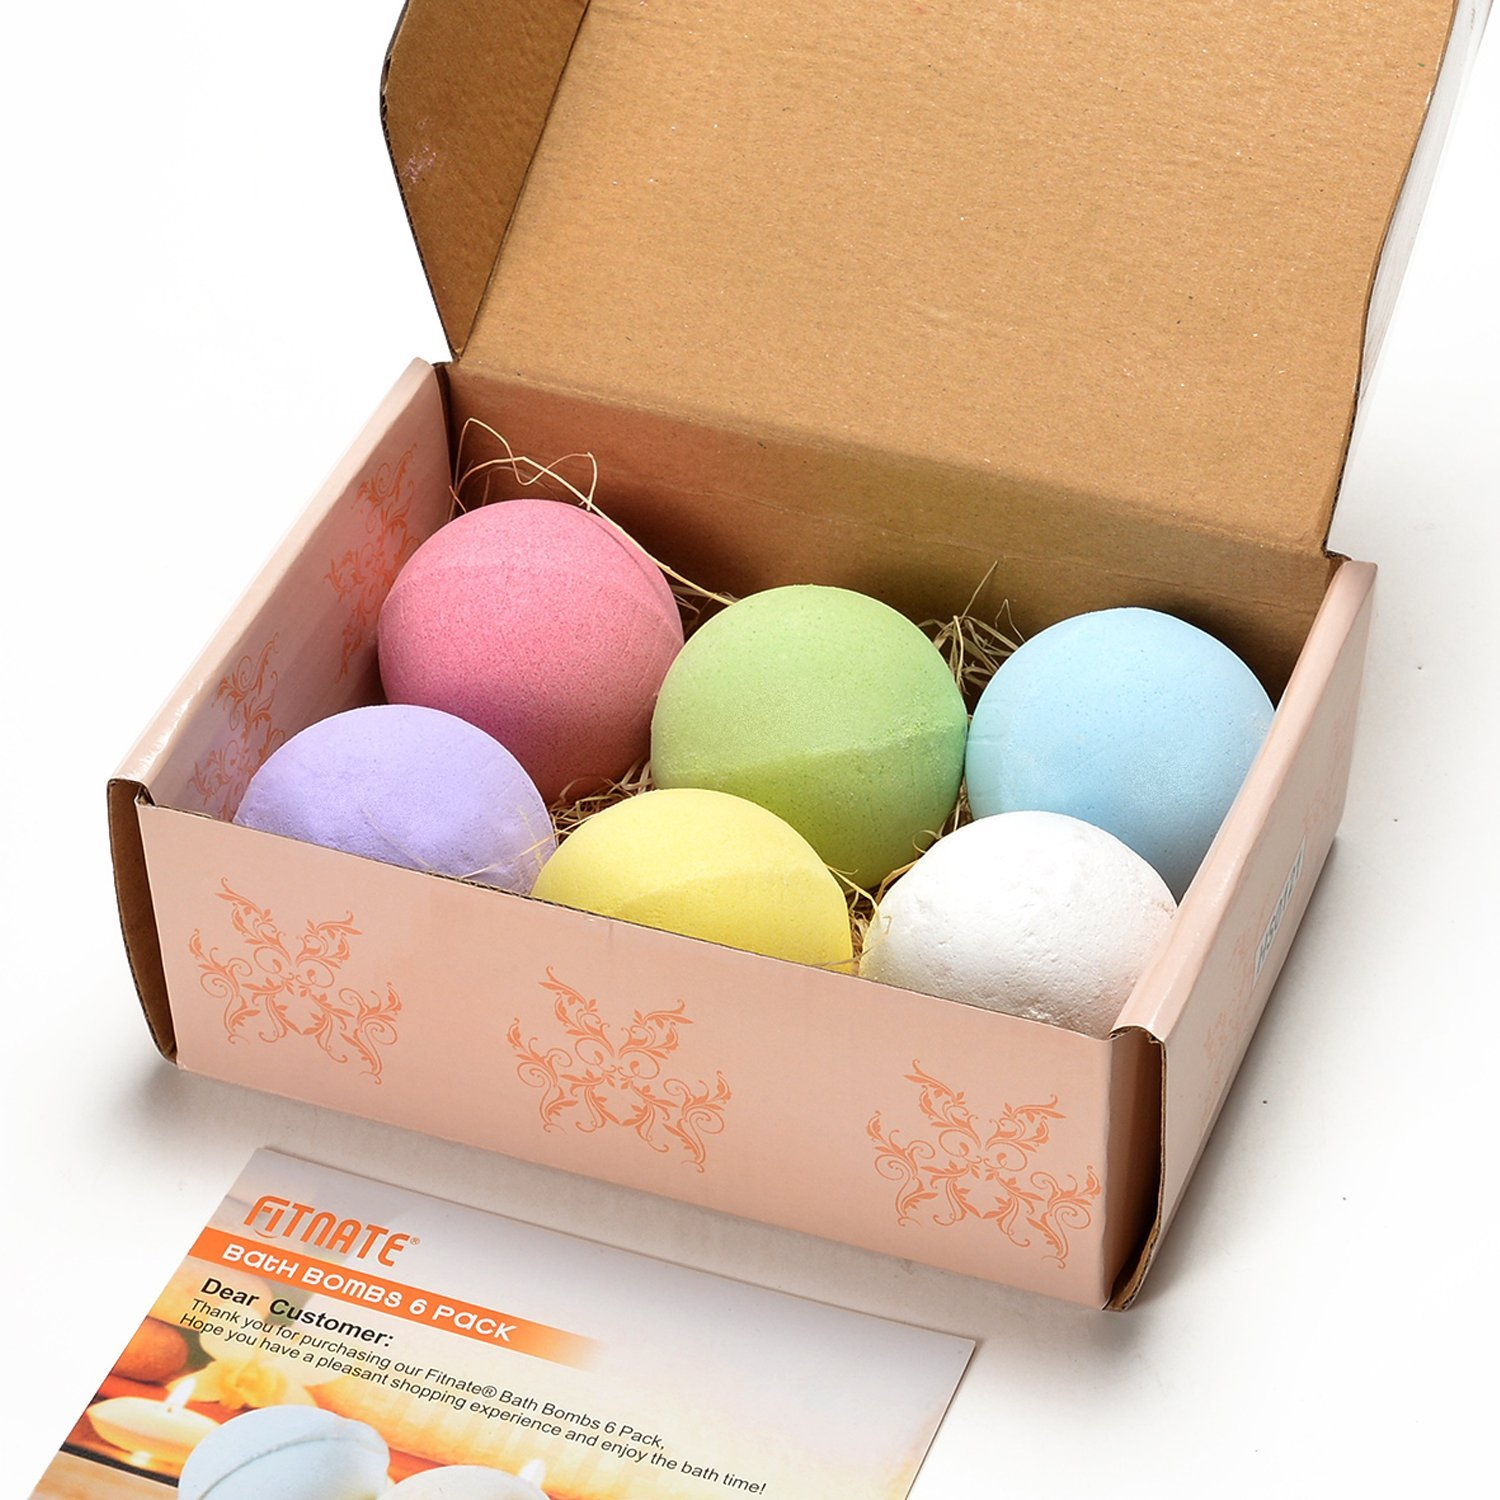 Bath Bombs Gift Set, Fitnate Handmade Spa Bath Bombs Kit Ultra Lush Spa Fizzy - 6 pcs Larger Size